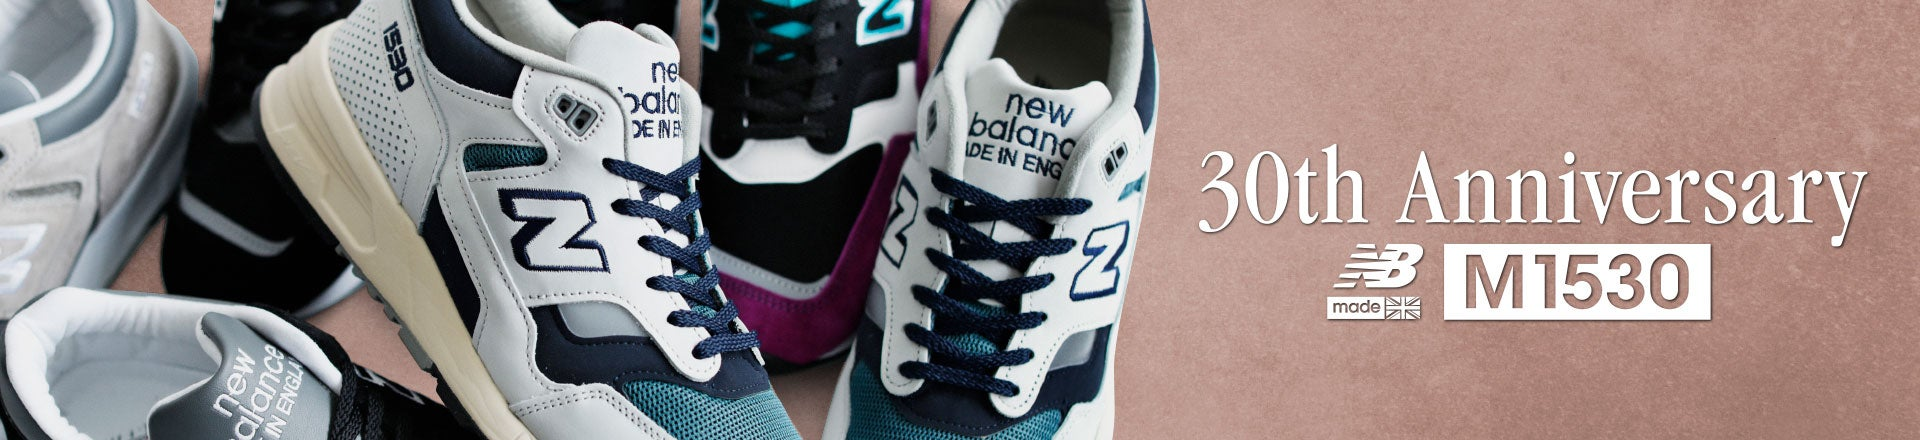 30th Anniversary NB M1530